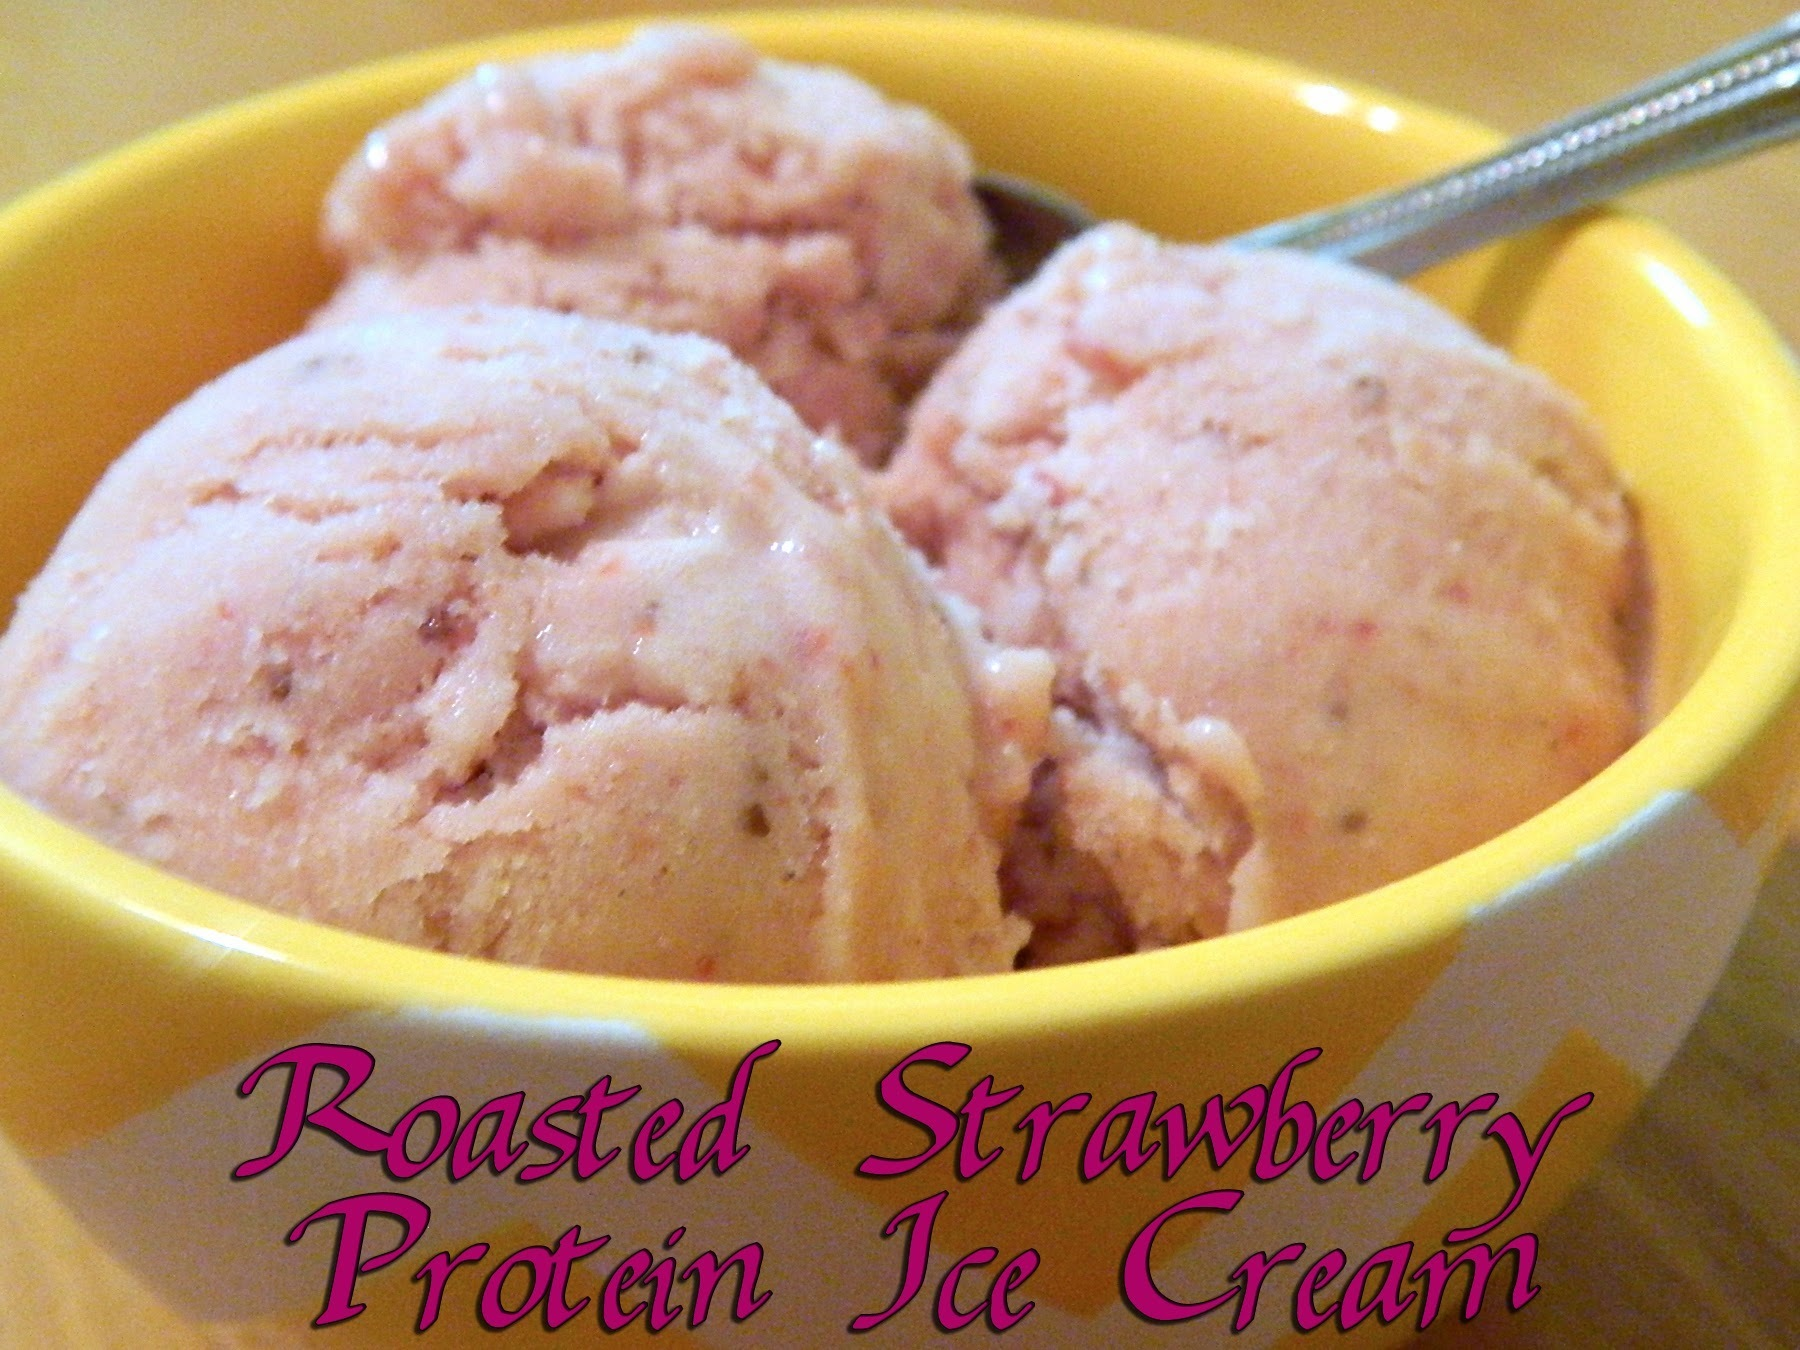 Roasted Strawberry Protein Ice Cream